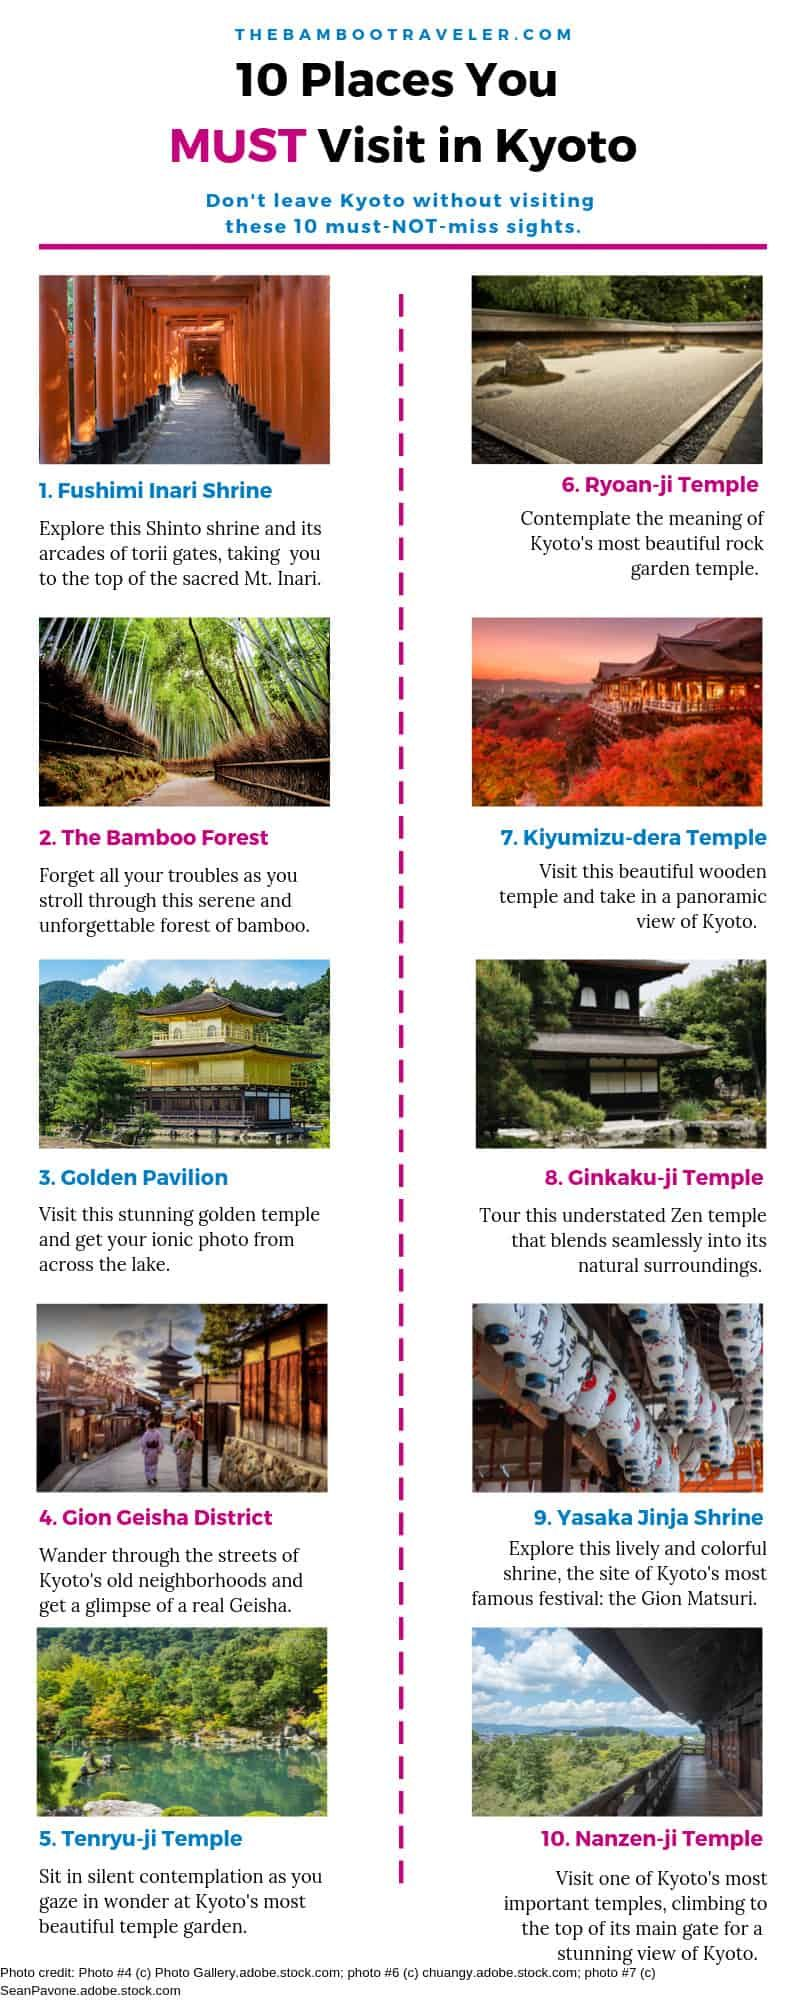 Top 10 Must-See Places to Visit in Kyoto - The Bamboo Traveler